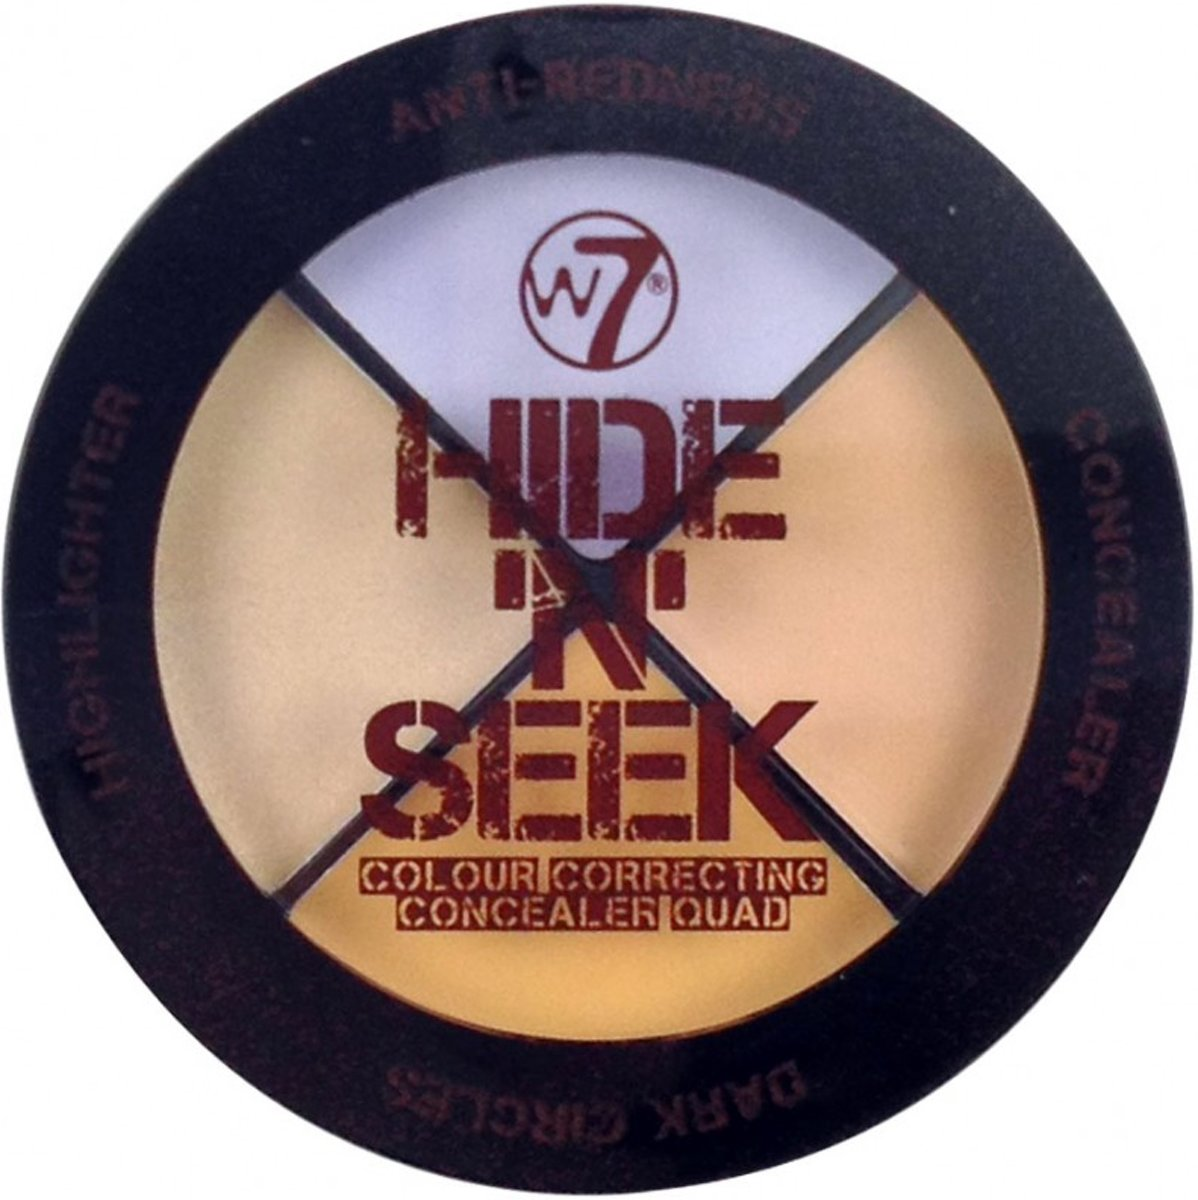 W7 Make-Up Hide n Seek Concealer Quad